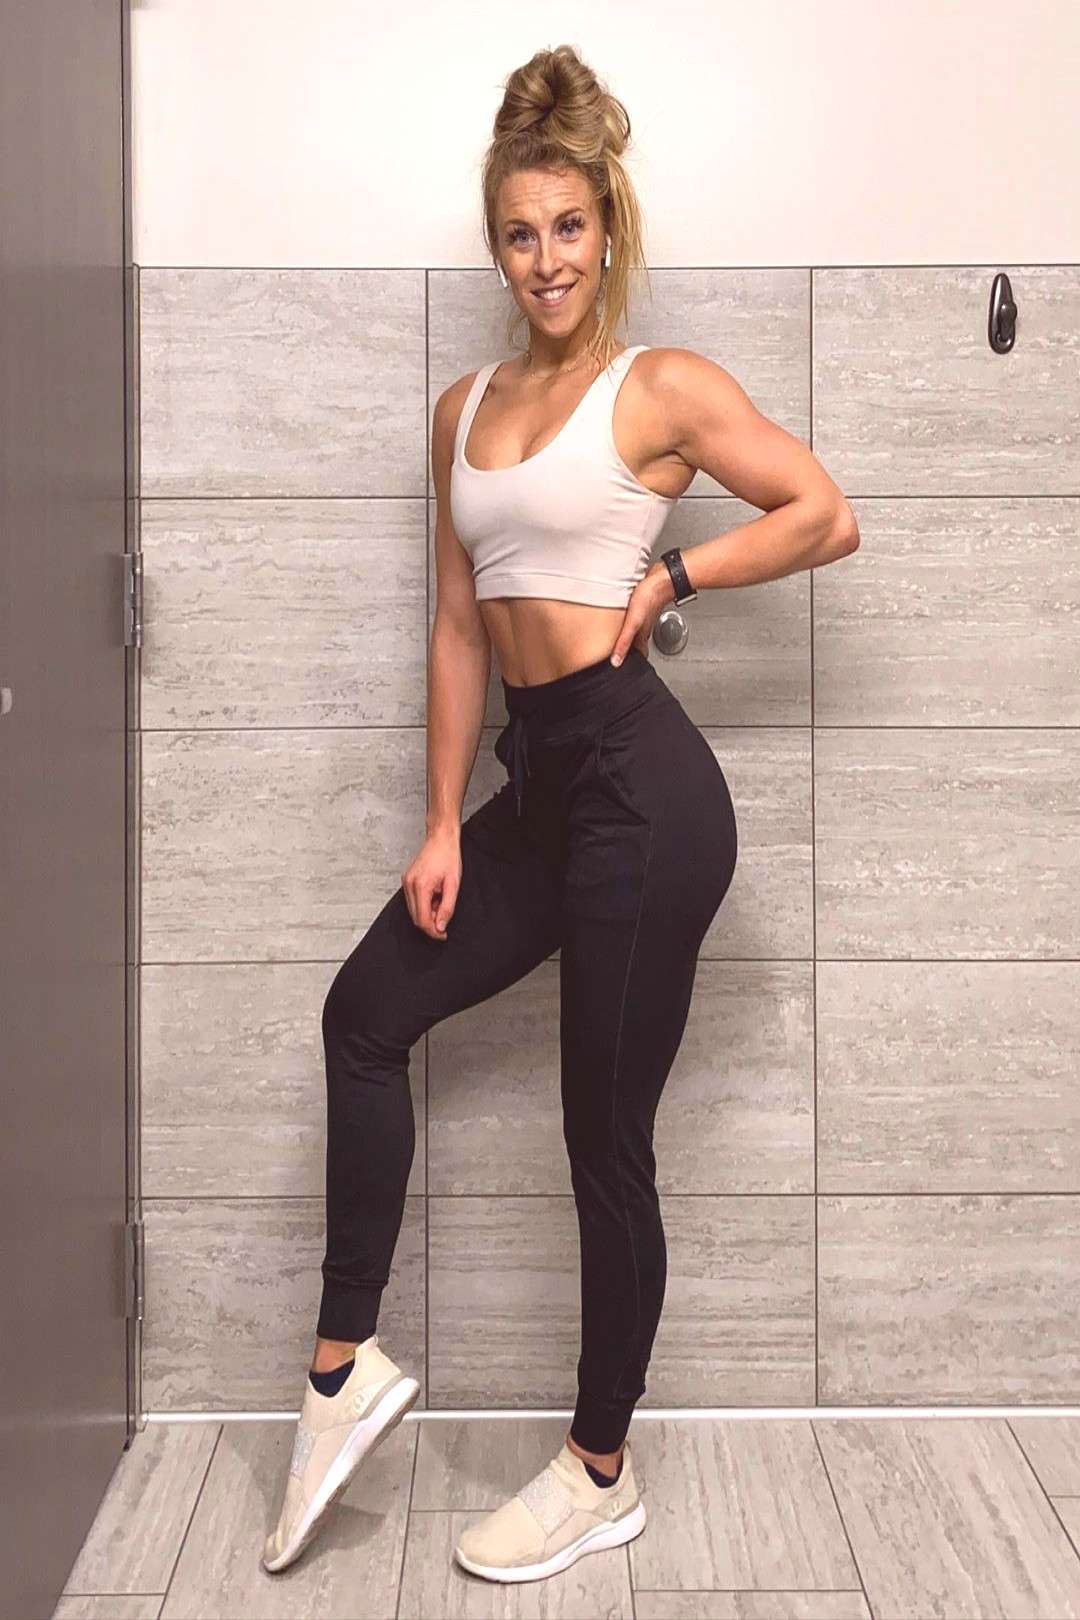 Liv Fit LLC by Olivia Ingledue on June 10 2020 and 1 person stand